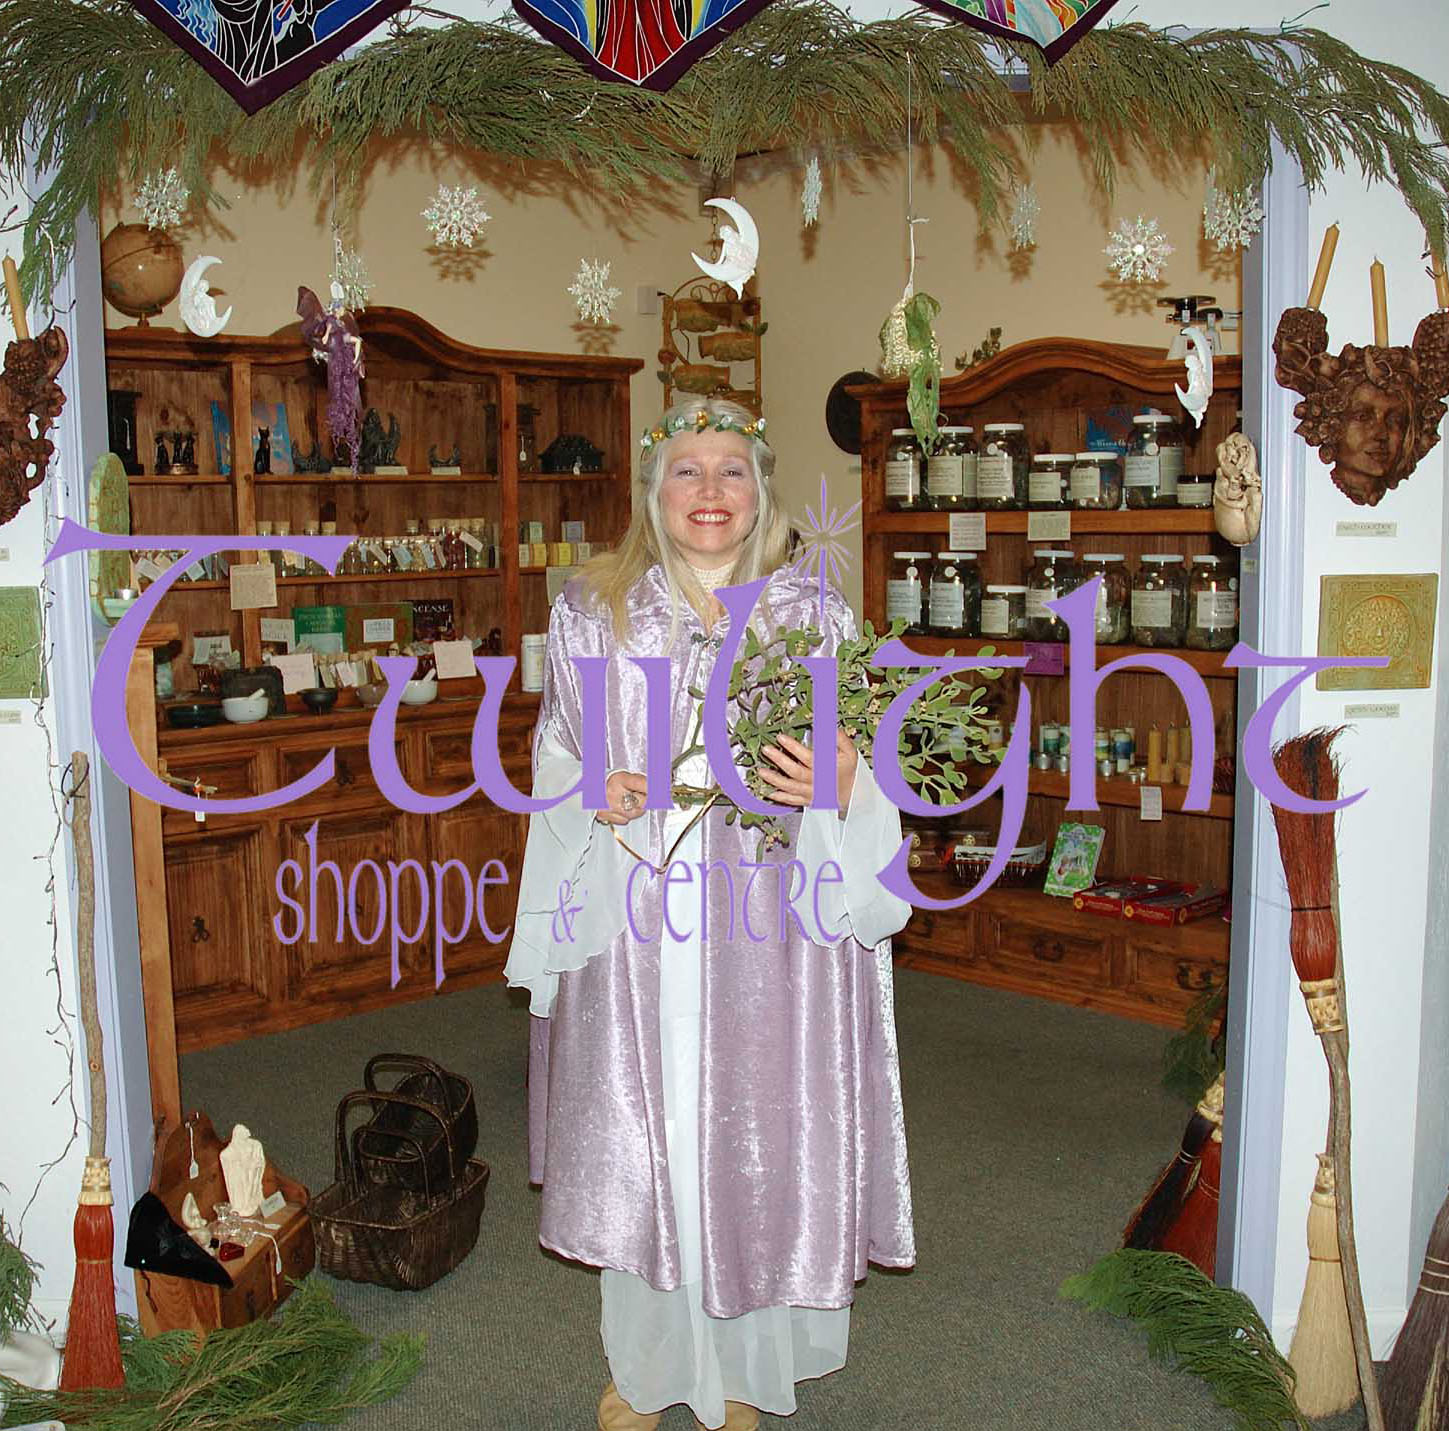 A magickal shoppe worth visiting...